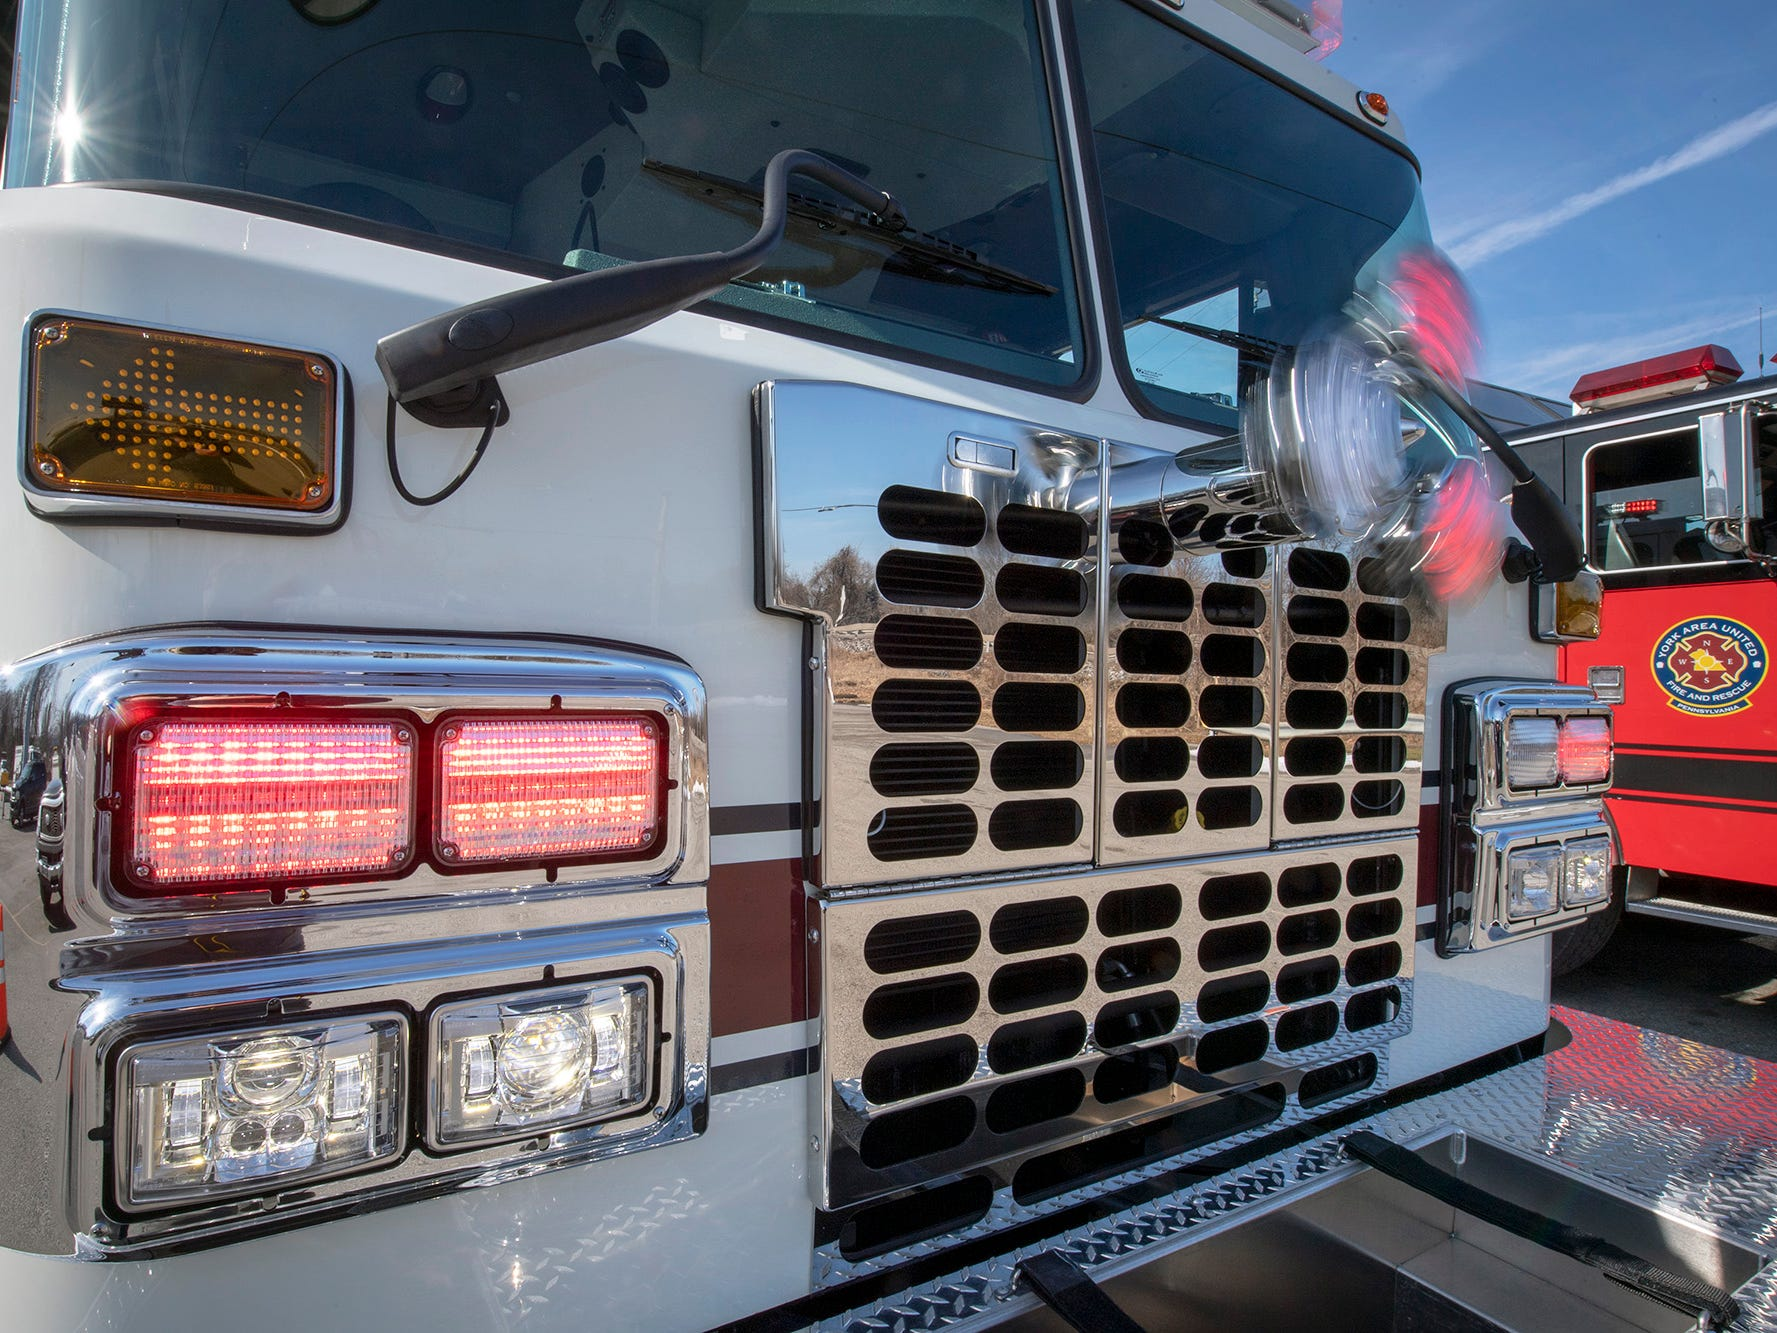 LED lighting on Engine 892 allows for a smaller alternator and less fuel needed to power the engine at York Area United Fire & Rescue's Victory Fire Co. No. 2 in Spring Garden Township.